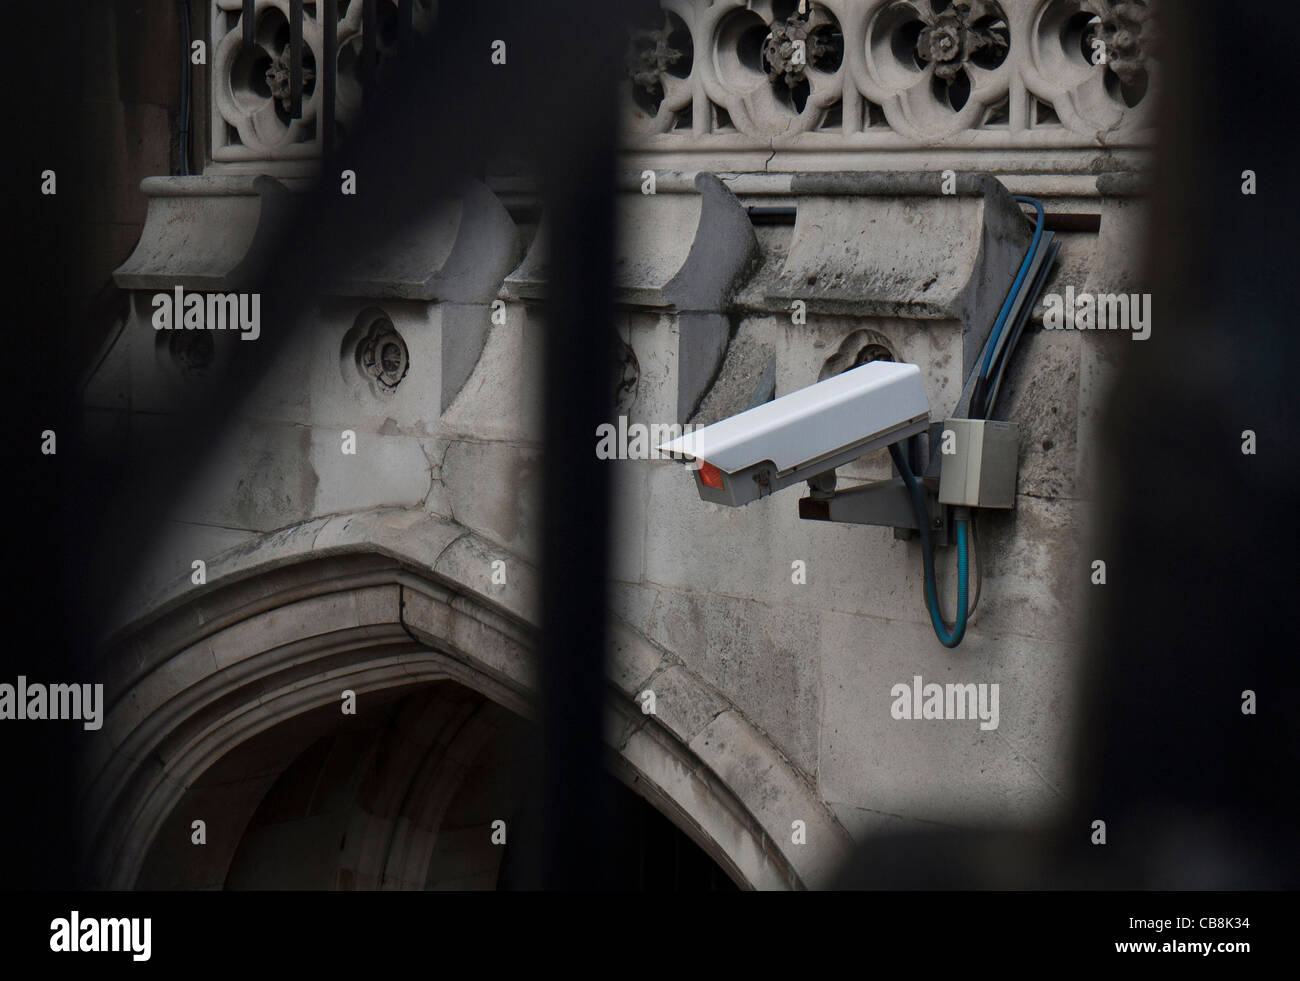 CCTV security camera attached to historic building in London Stock Photo